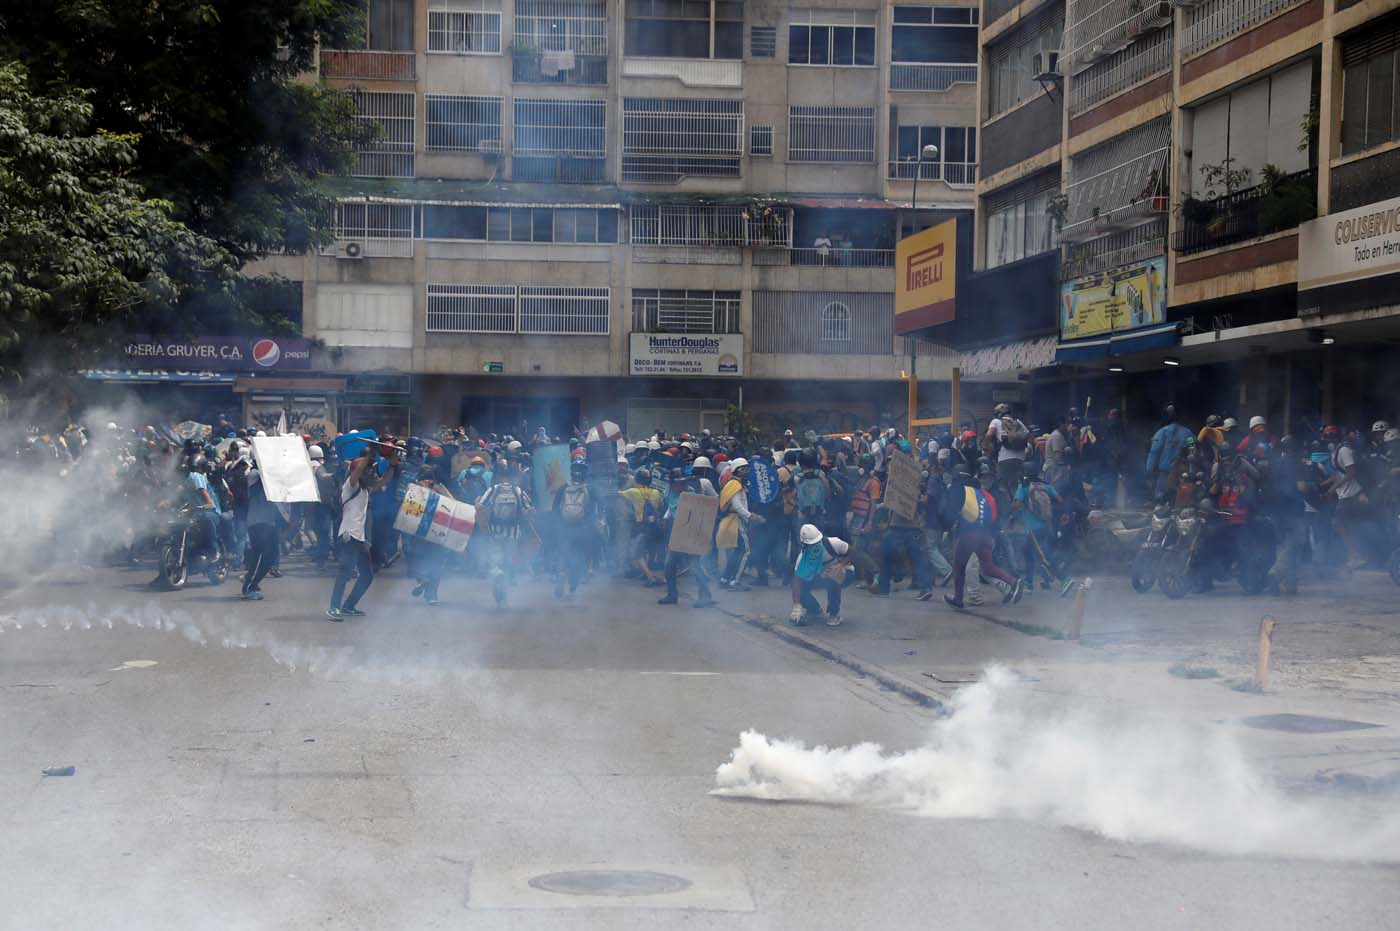 Demonstrators clash with riot security forces while rallying against President Nicolas Maduro in Caracas, Venezuela May 24, 2017. REUTERS/Carlos Garcia Rawlins